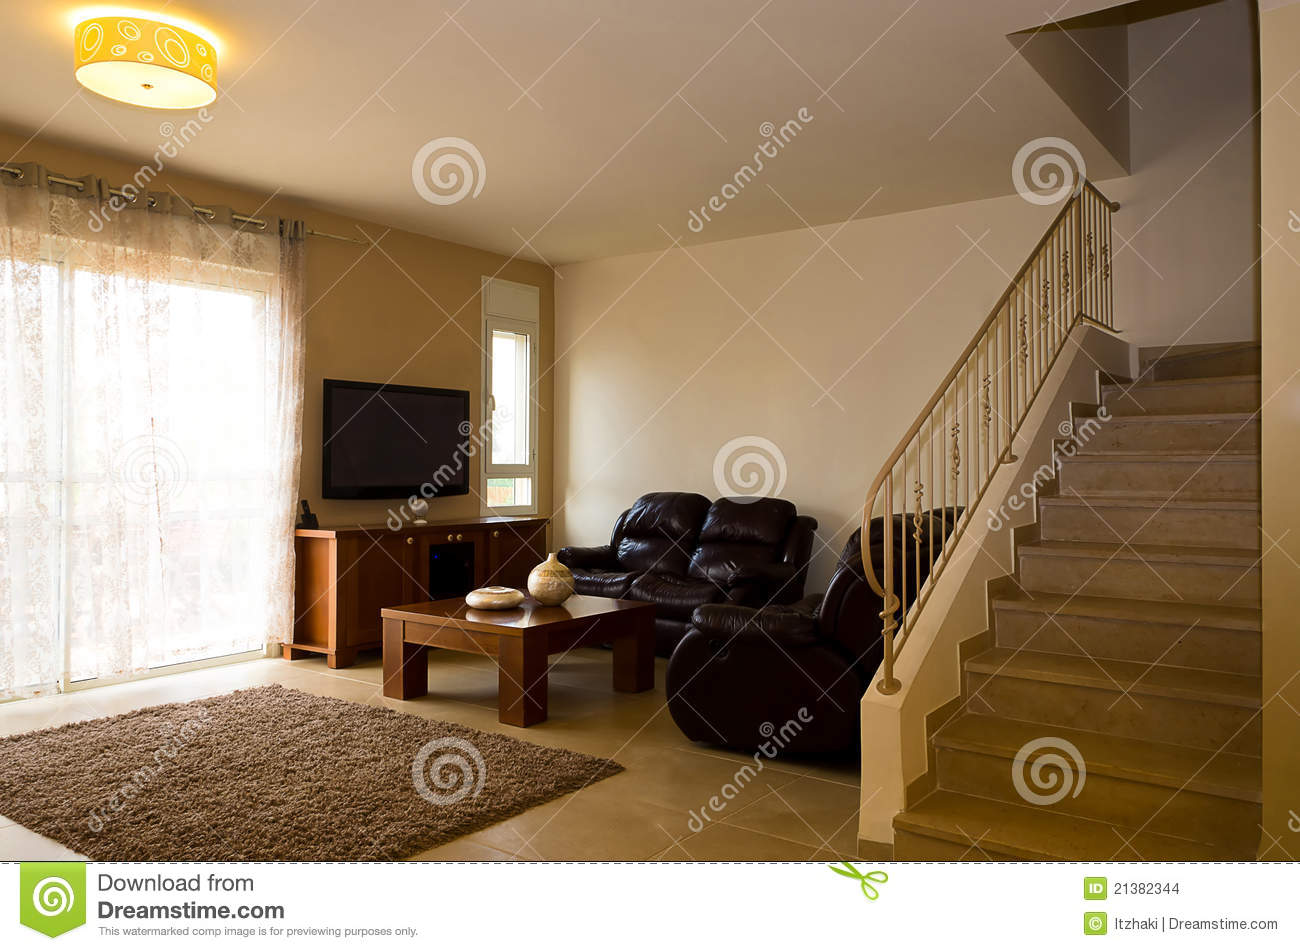 Upstairs living room interior of luxury house stock photo for Houses with upstairs living